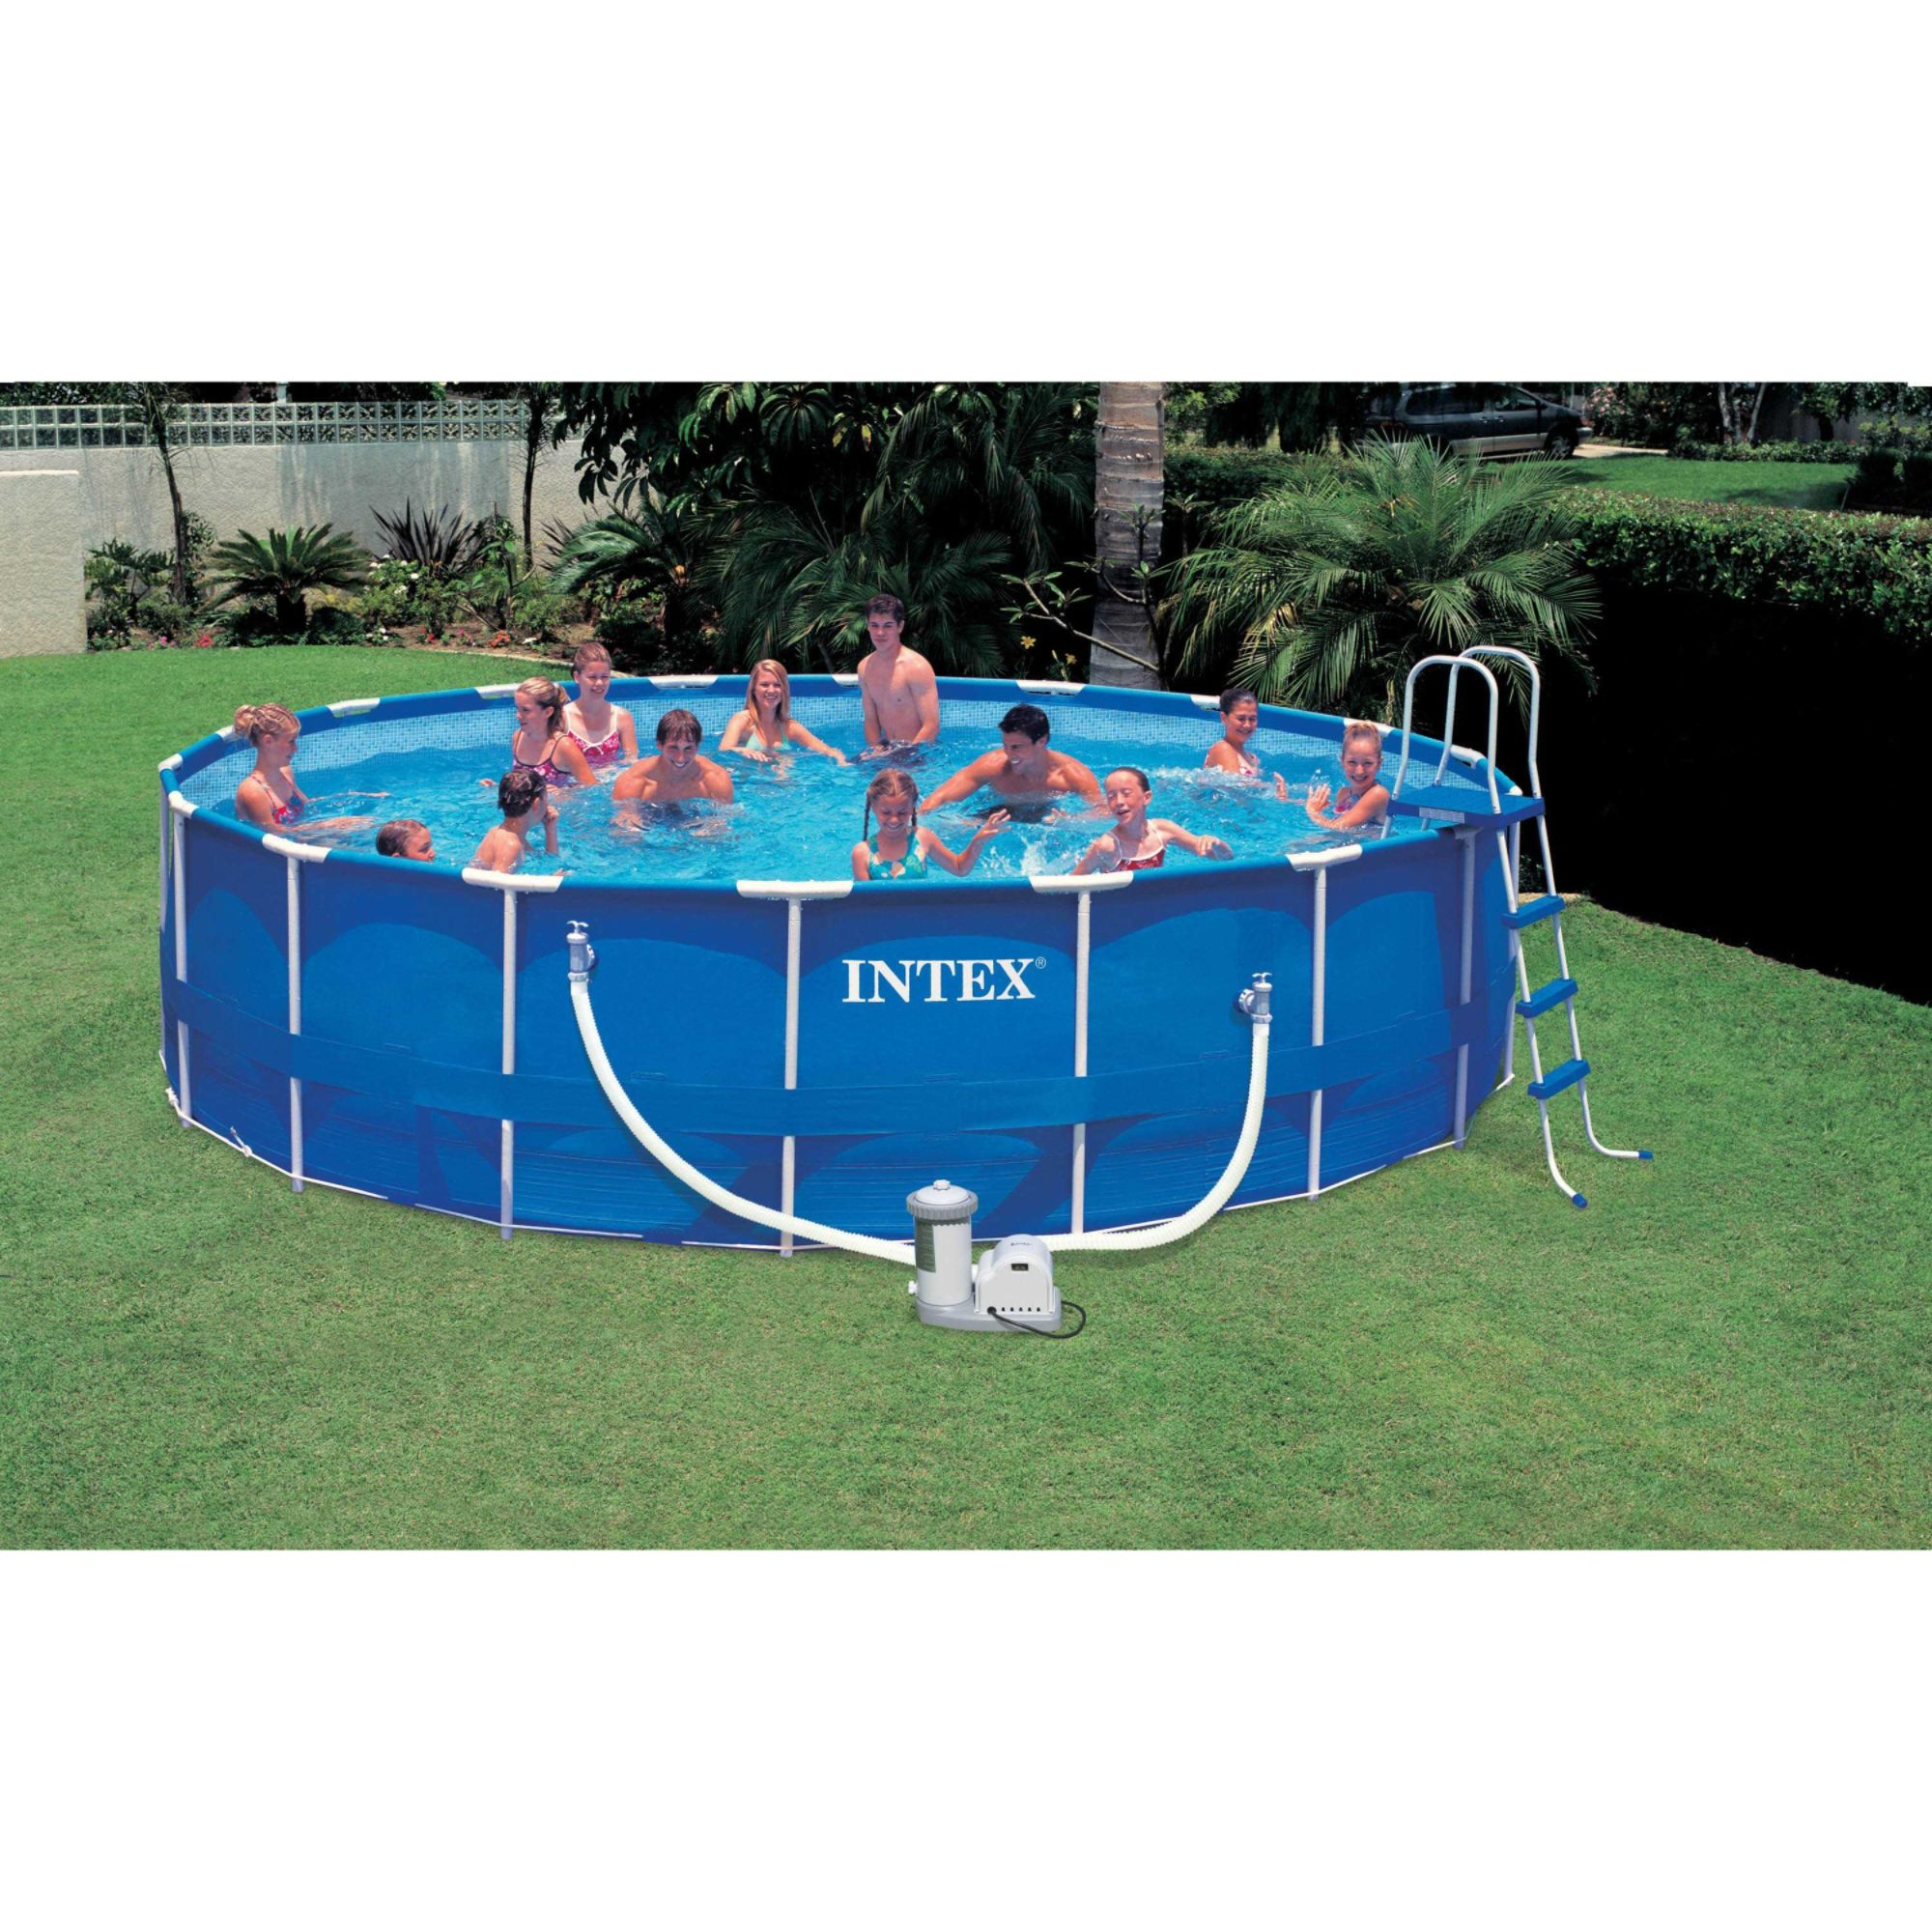 Intex Piscinas Acessorios Intex 18 39 X 48 Quot Round Metal Frame Pool Package Sears